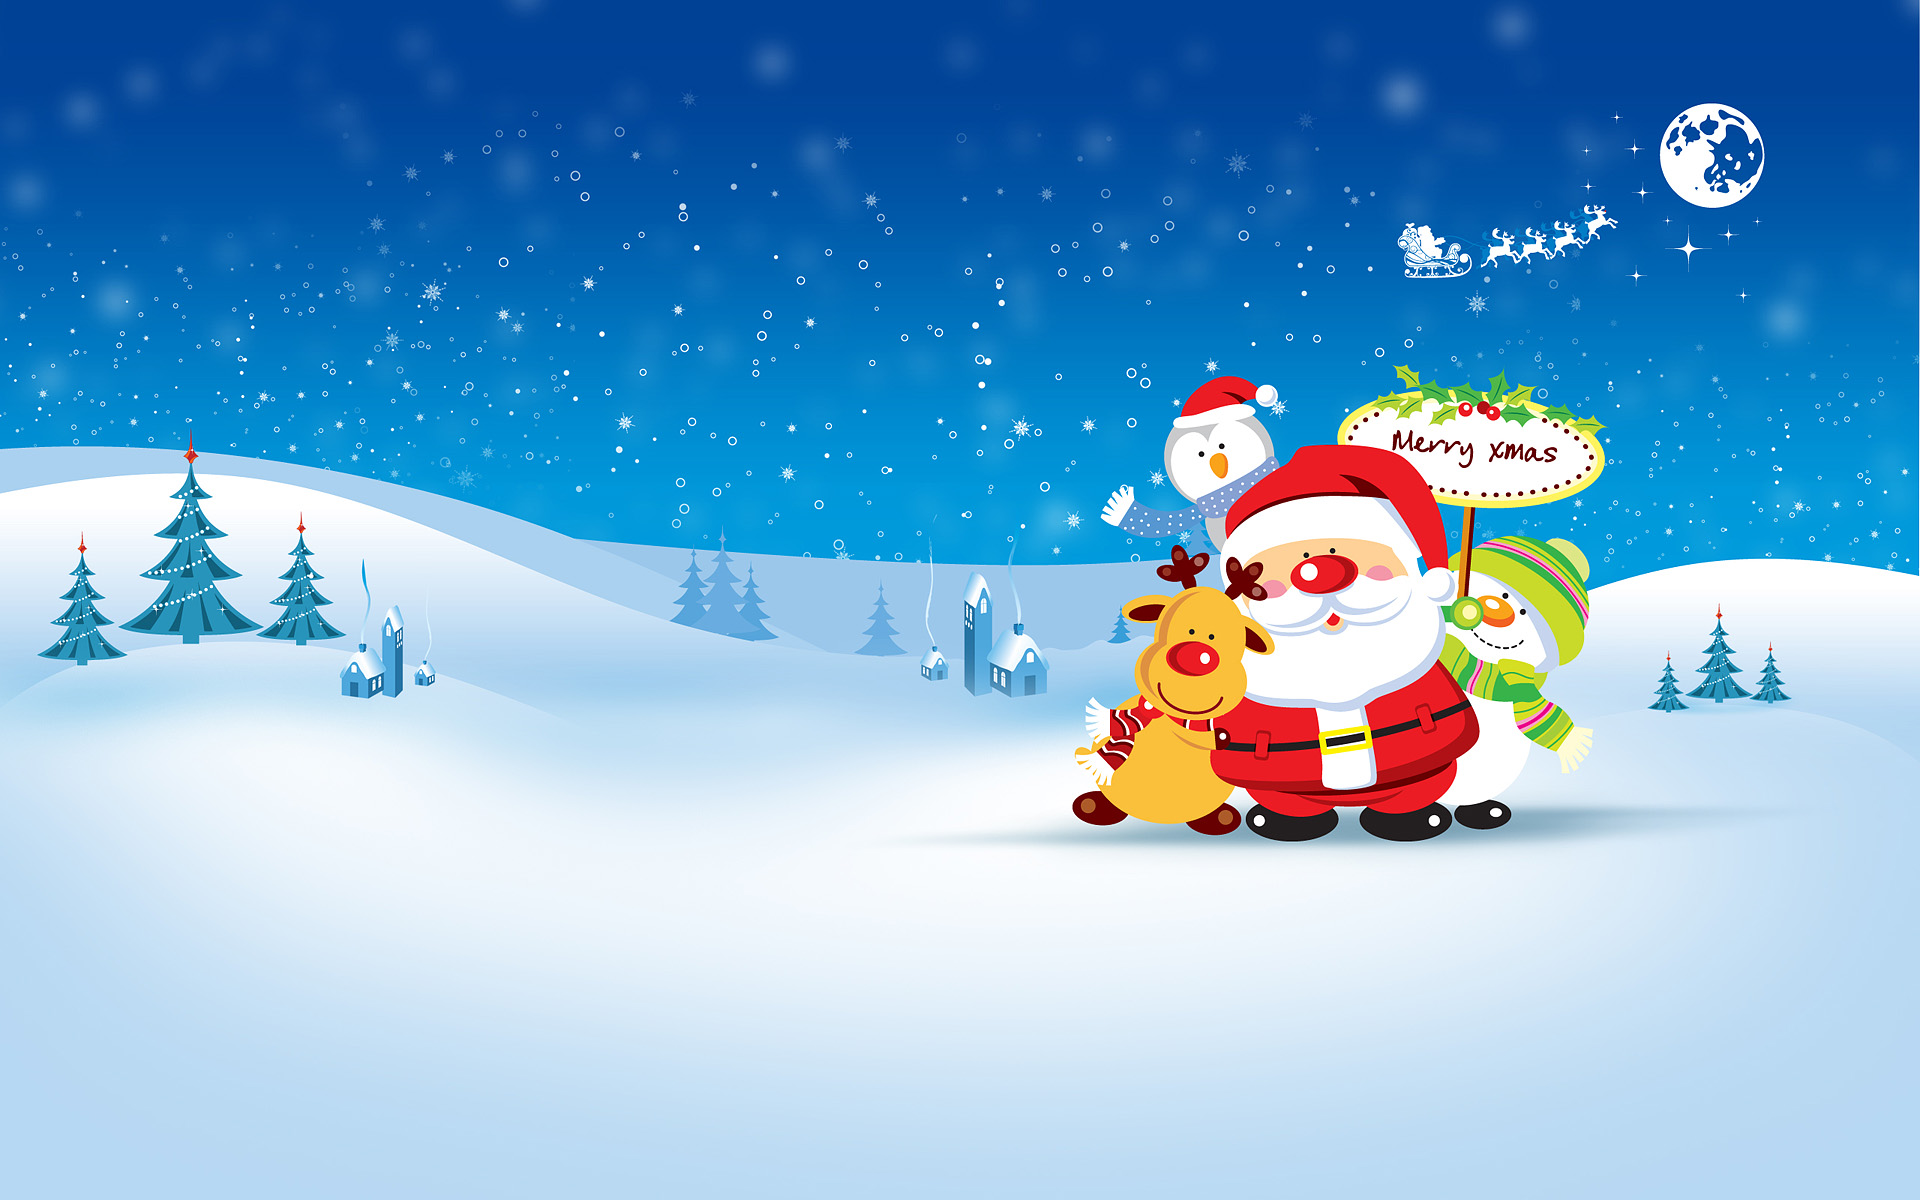 Christmas Wallpaper 21815